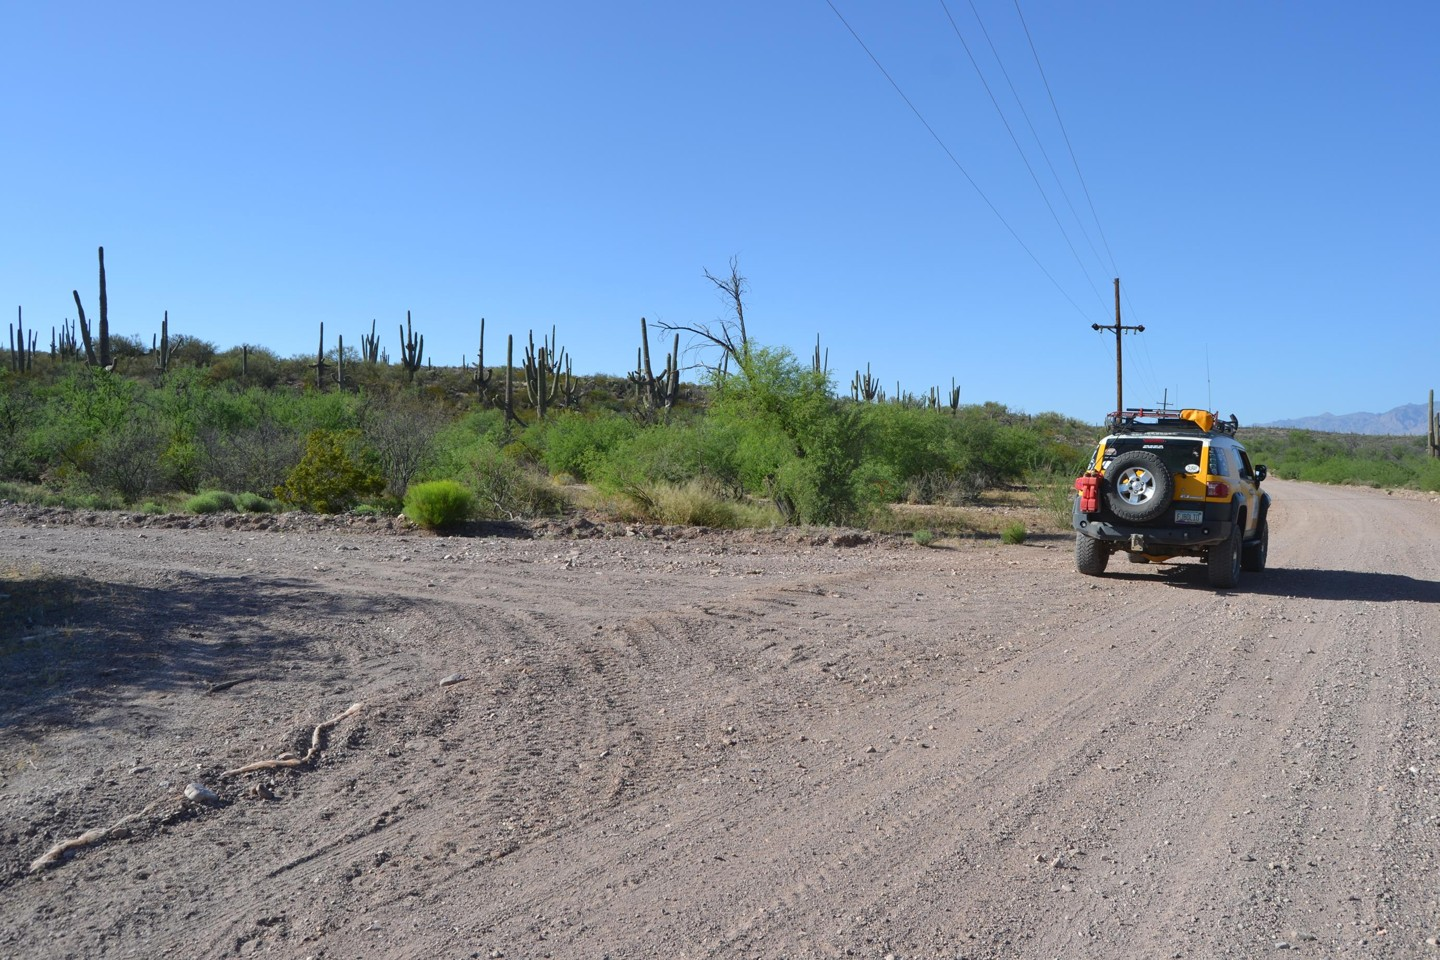 Redington Pass - Waypoint 48: Unknown Two-Track Road 4x4 to West (Stay Right)